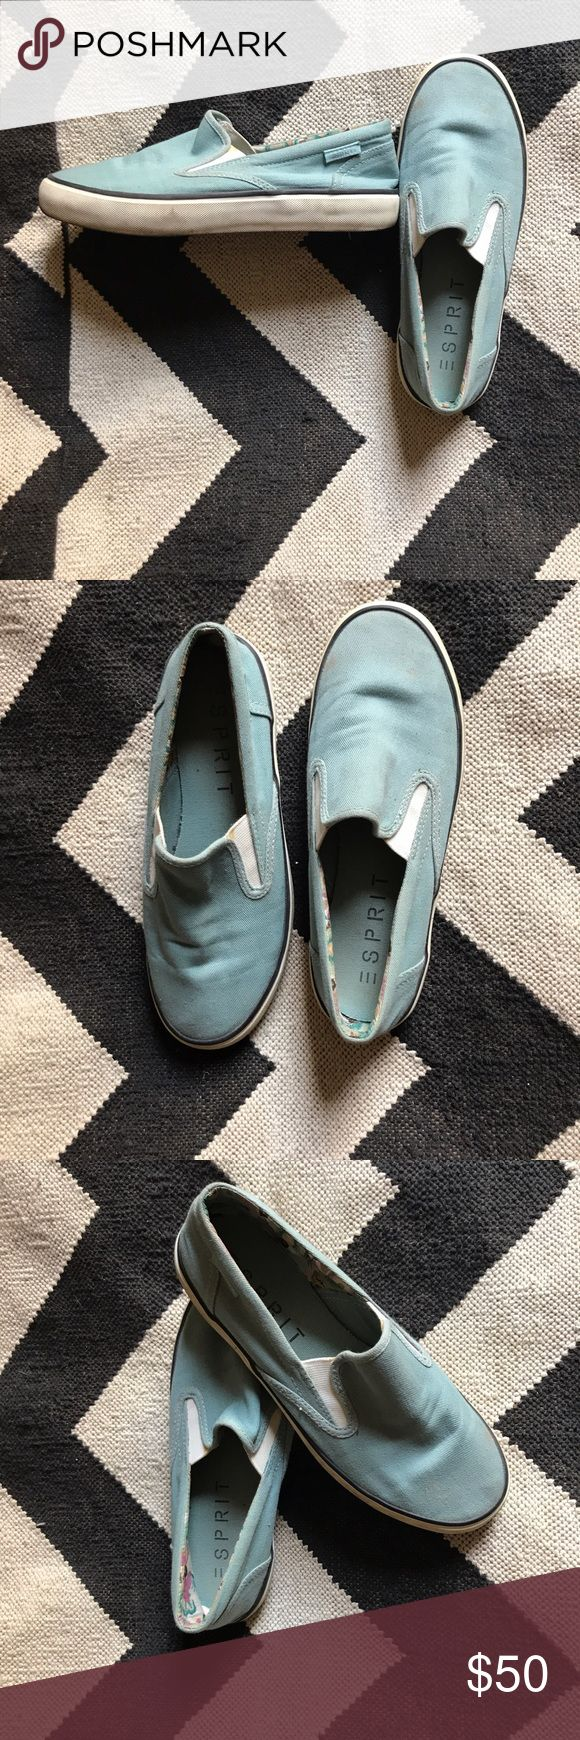 Esprit slip on loafers Esprit blue canvas slip on loafers with Vans styling. Lightweight cotton material, cute floral lining. Perfect for summer! Worn 2-3 times and they just don't match my wardrobe & tiny nyc apartment! Smoke & pet free home. Esprit Shoes Flats & Loafers